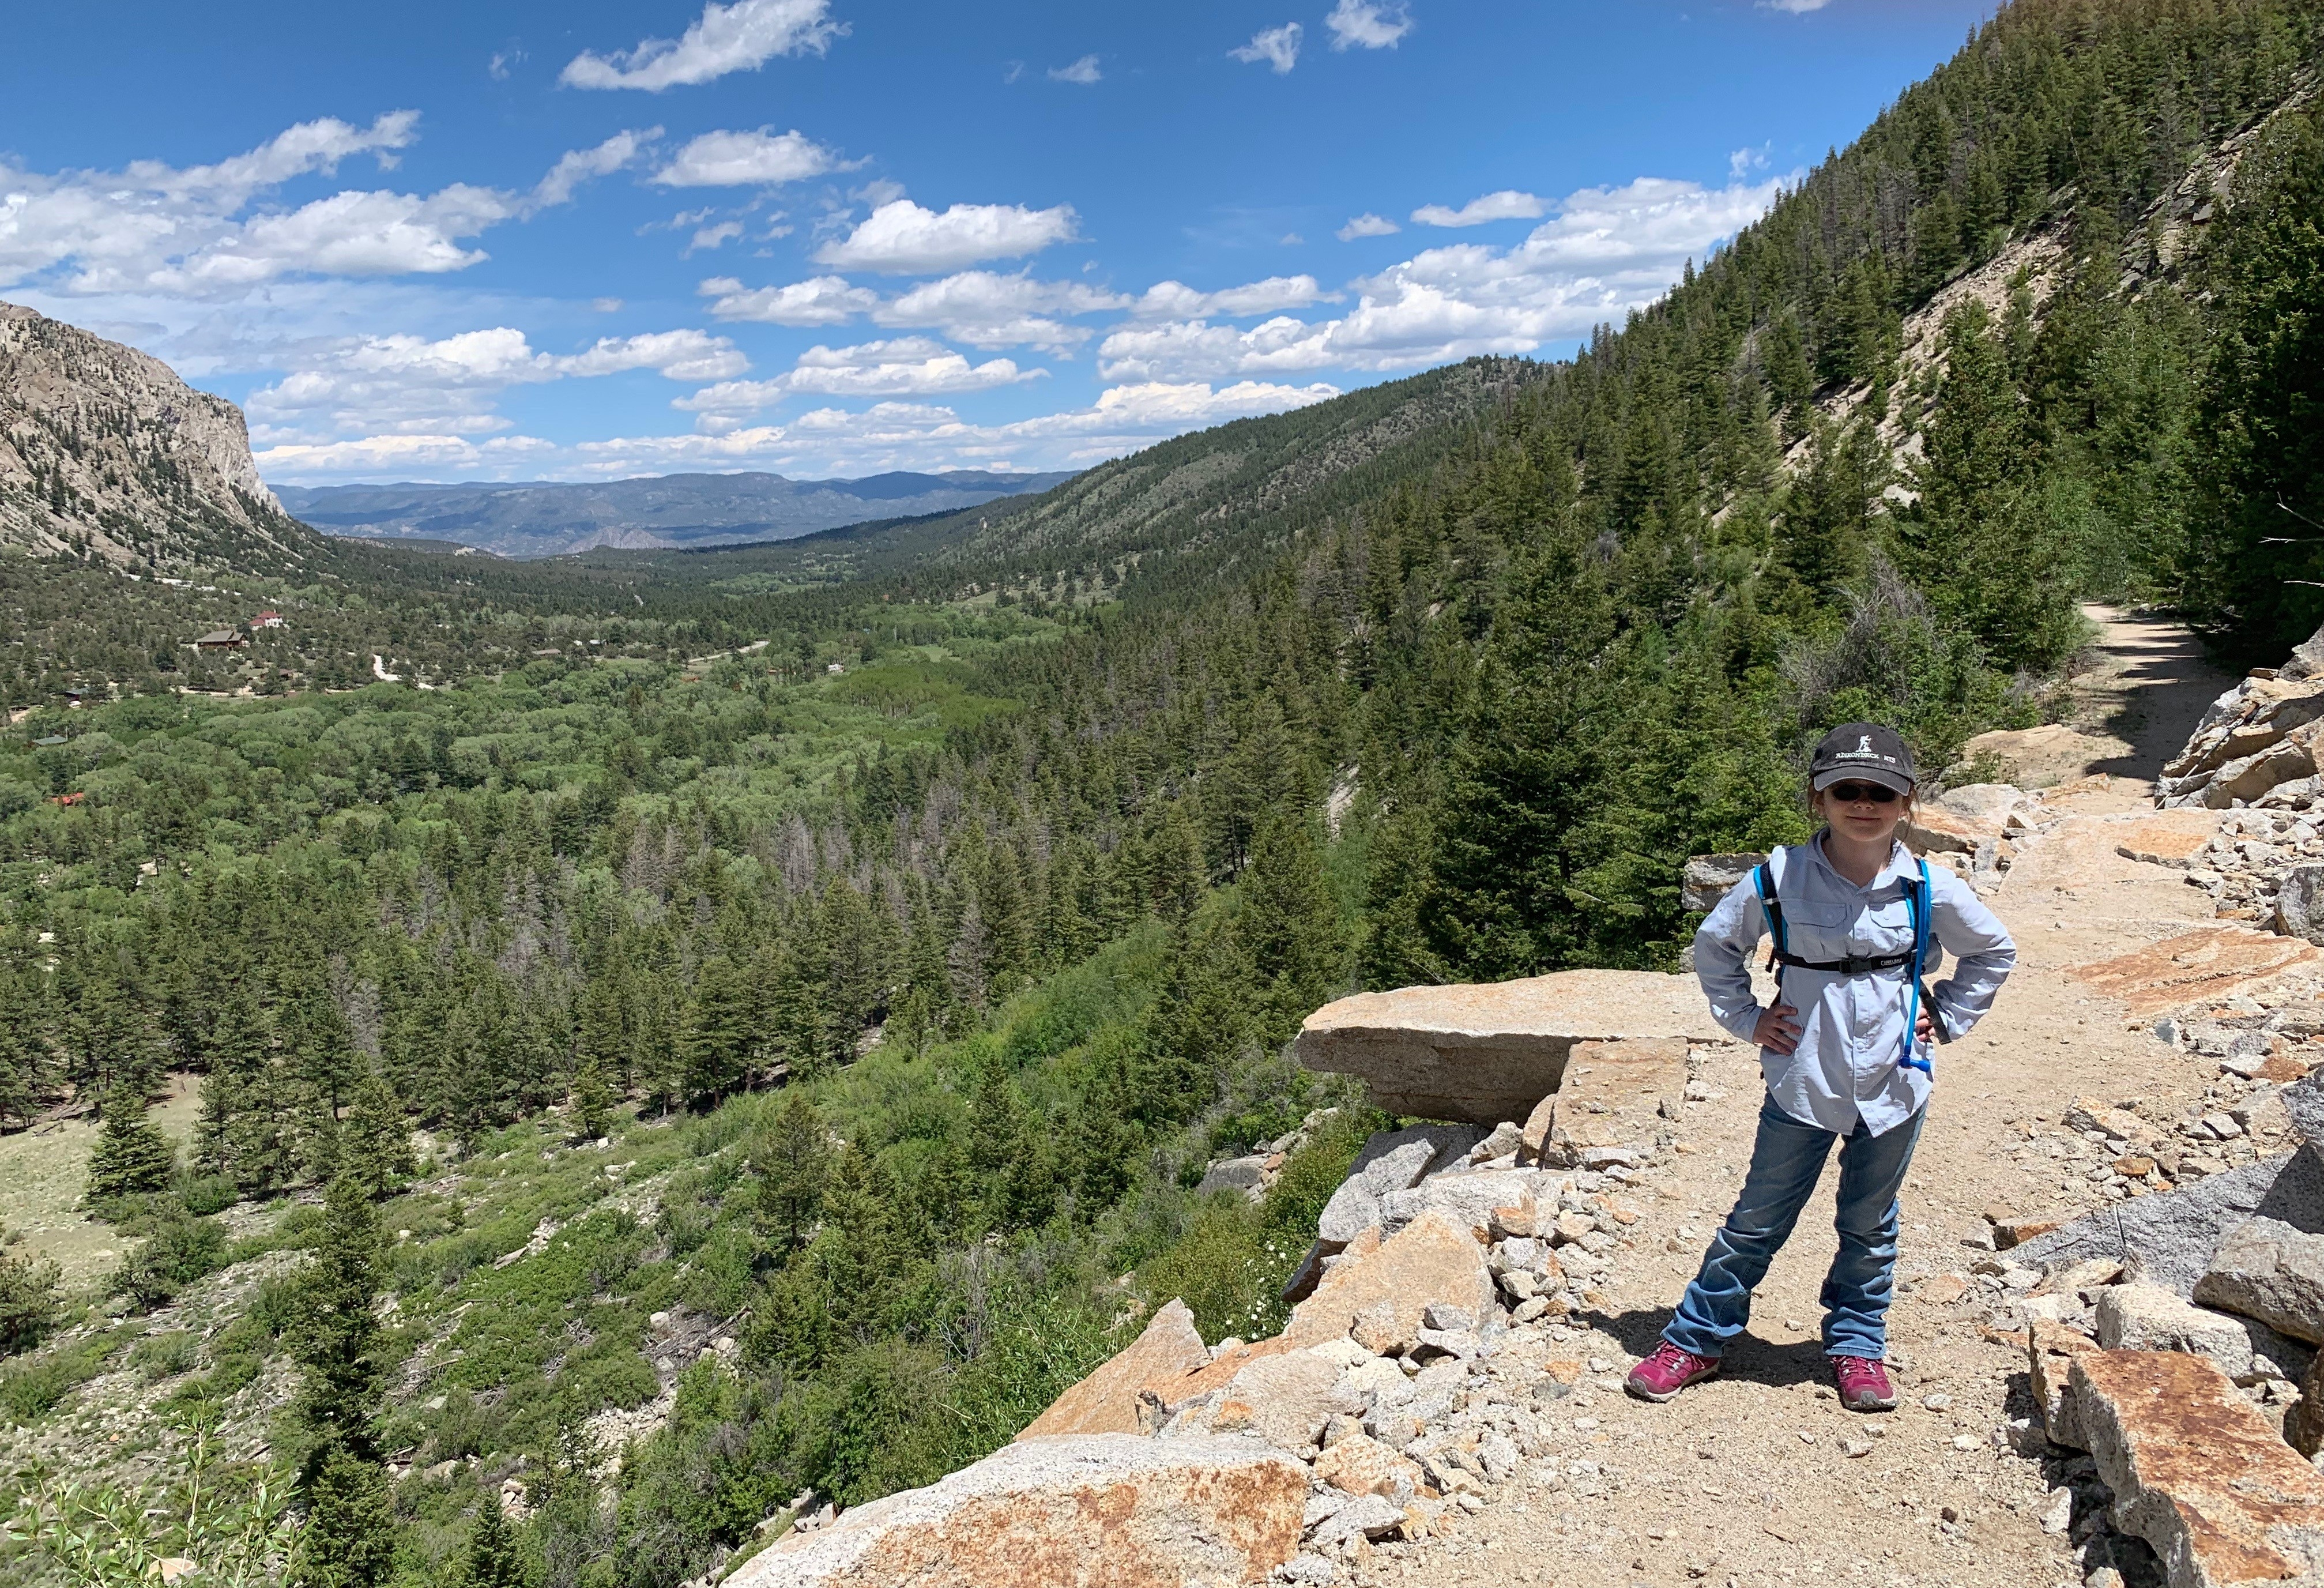 Fat Chance: Why I Am Hiking the Pacific Crest Trail - The Trek